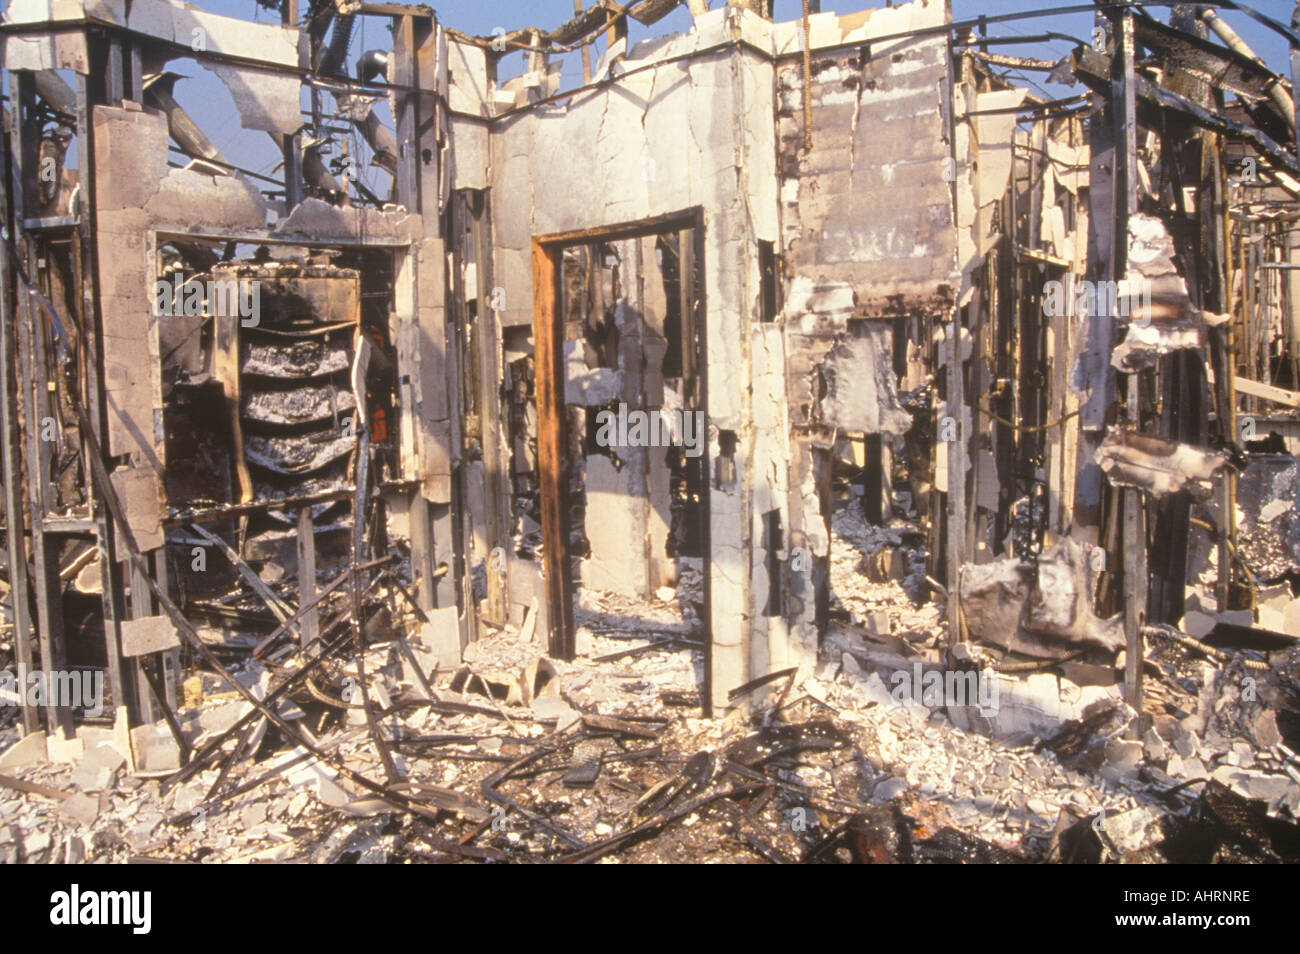 Interior of store burned out during 1992 riots South Central Los Angeles California - Stock Image